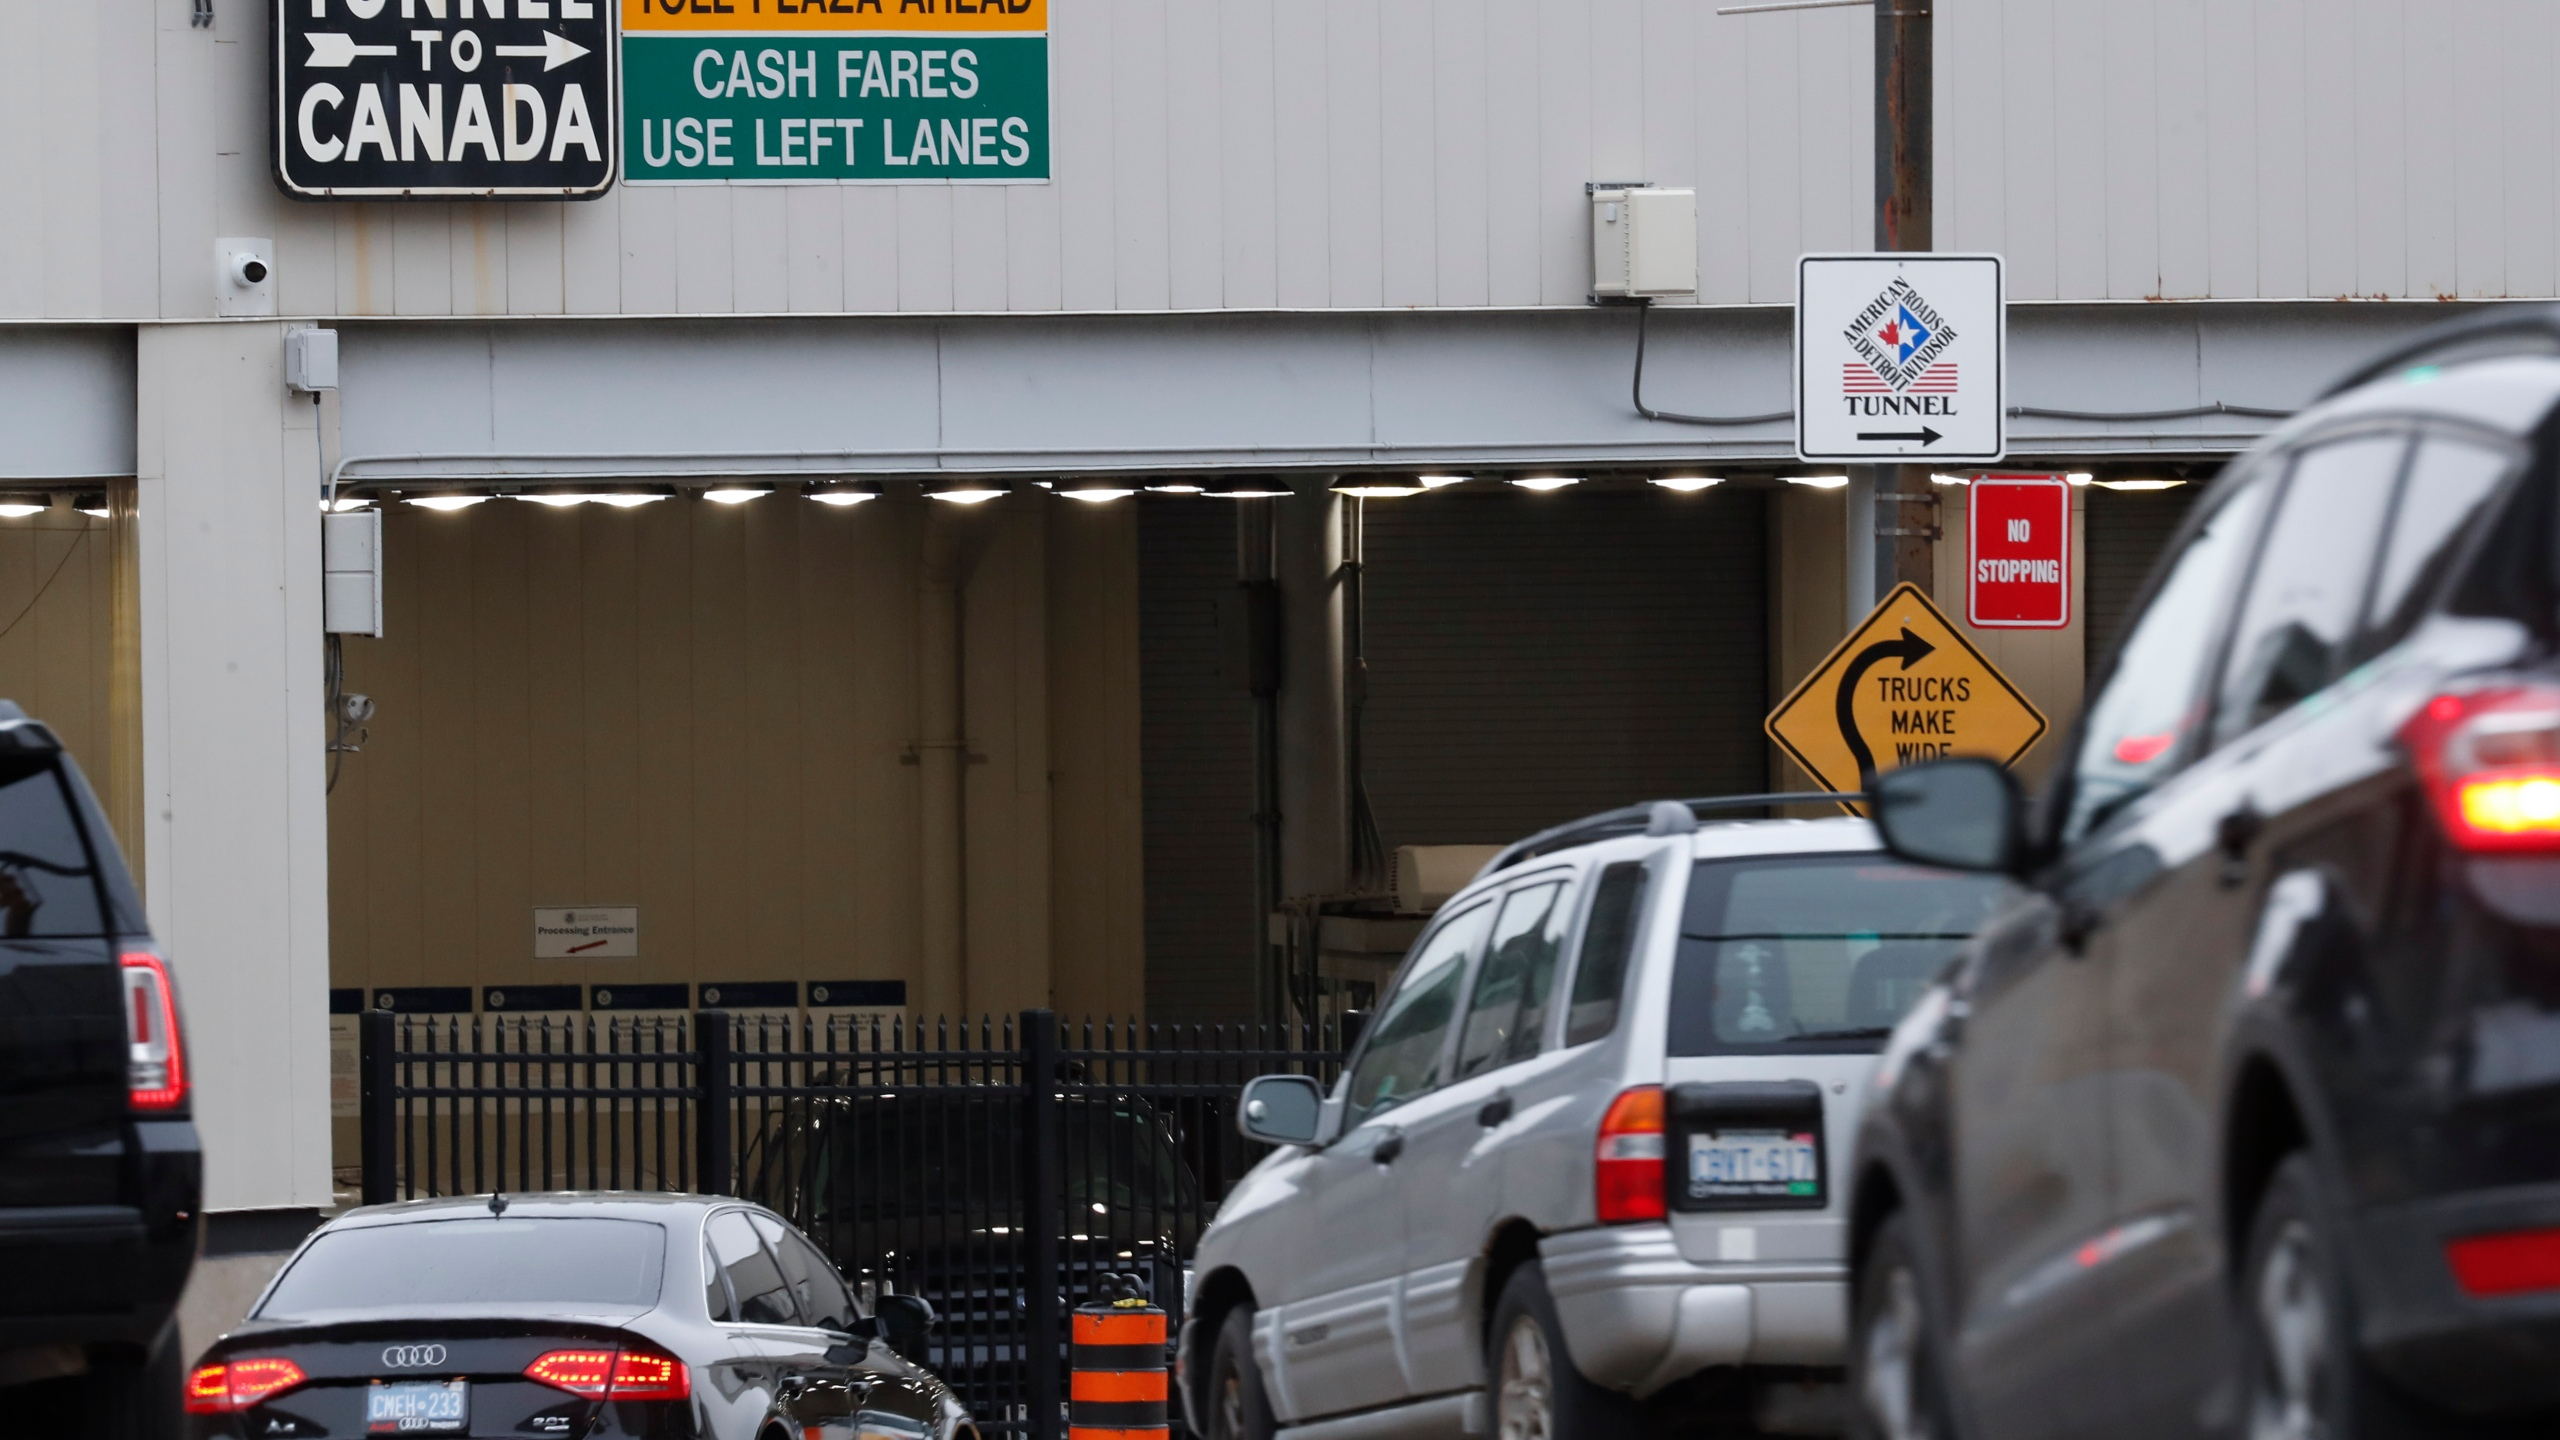 FILE - In this March 16, 2020, file photo, vehicles enter the Detroit-Windsor Tunnel in Detroit to travel to Canada. The Canada Border Services Agency has rejected a creative plan by Windsor Mayor Drew Dilkens to have Ontario residents line up inside the tunnel to get COVID-19 vaccinations. (AP Photo/Paul Sancya, File)